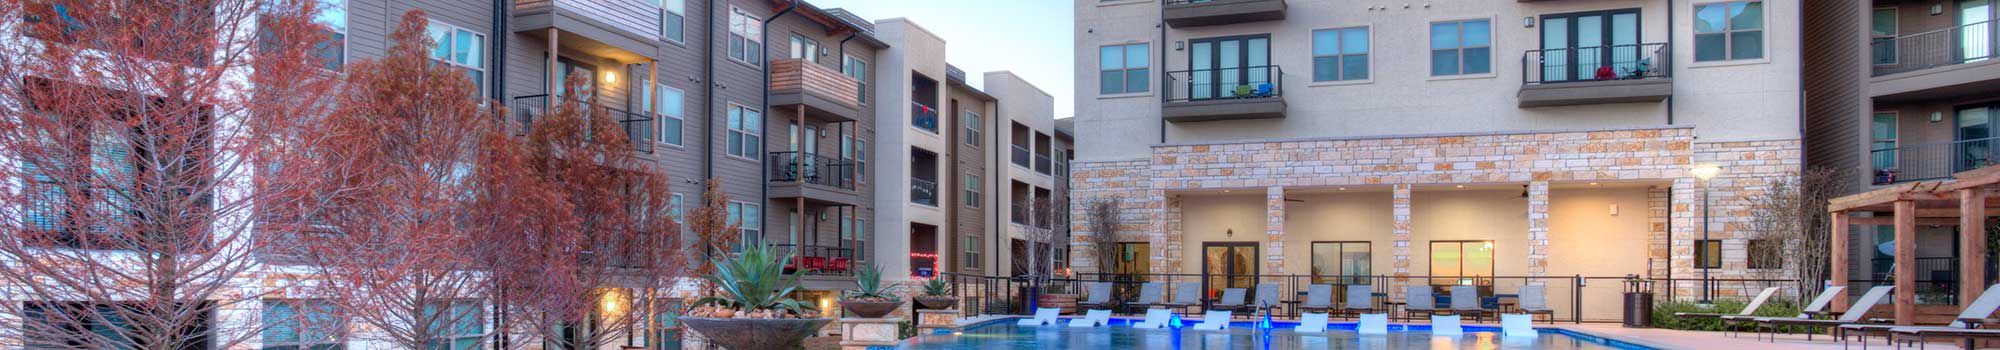 External view of our luxury apartment community at Axis at The Rim in San Antonio.